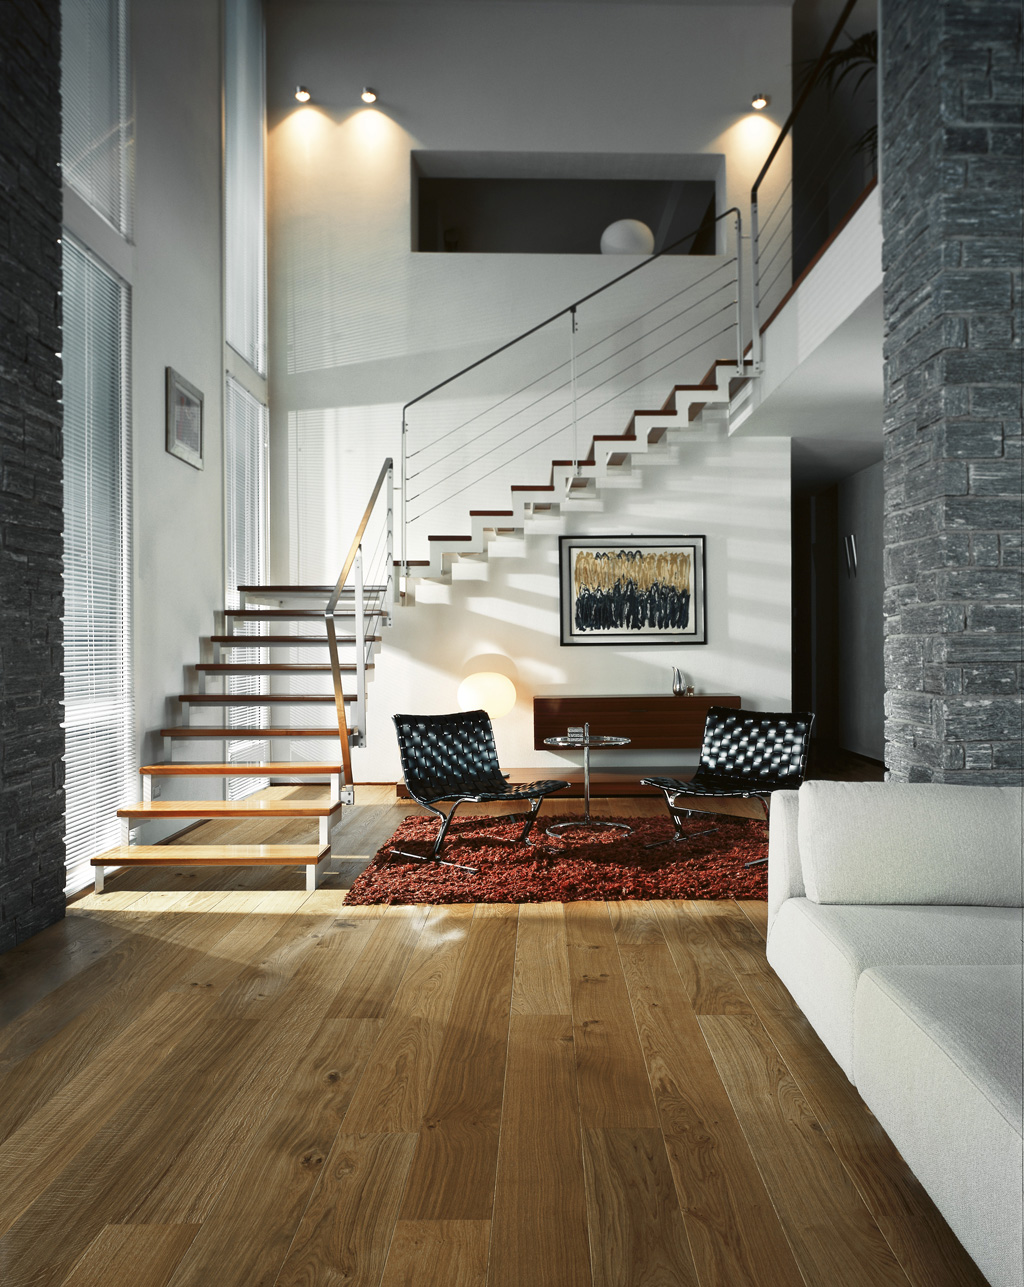 How to choose wooden flooring for your home fresh design for How to choose flooring for your home